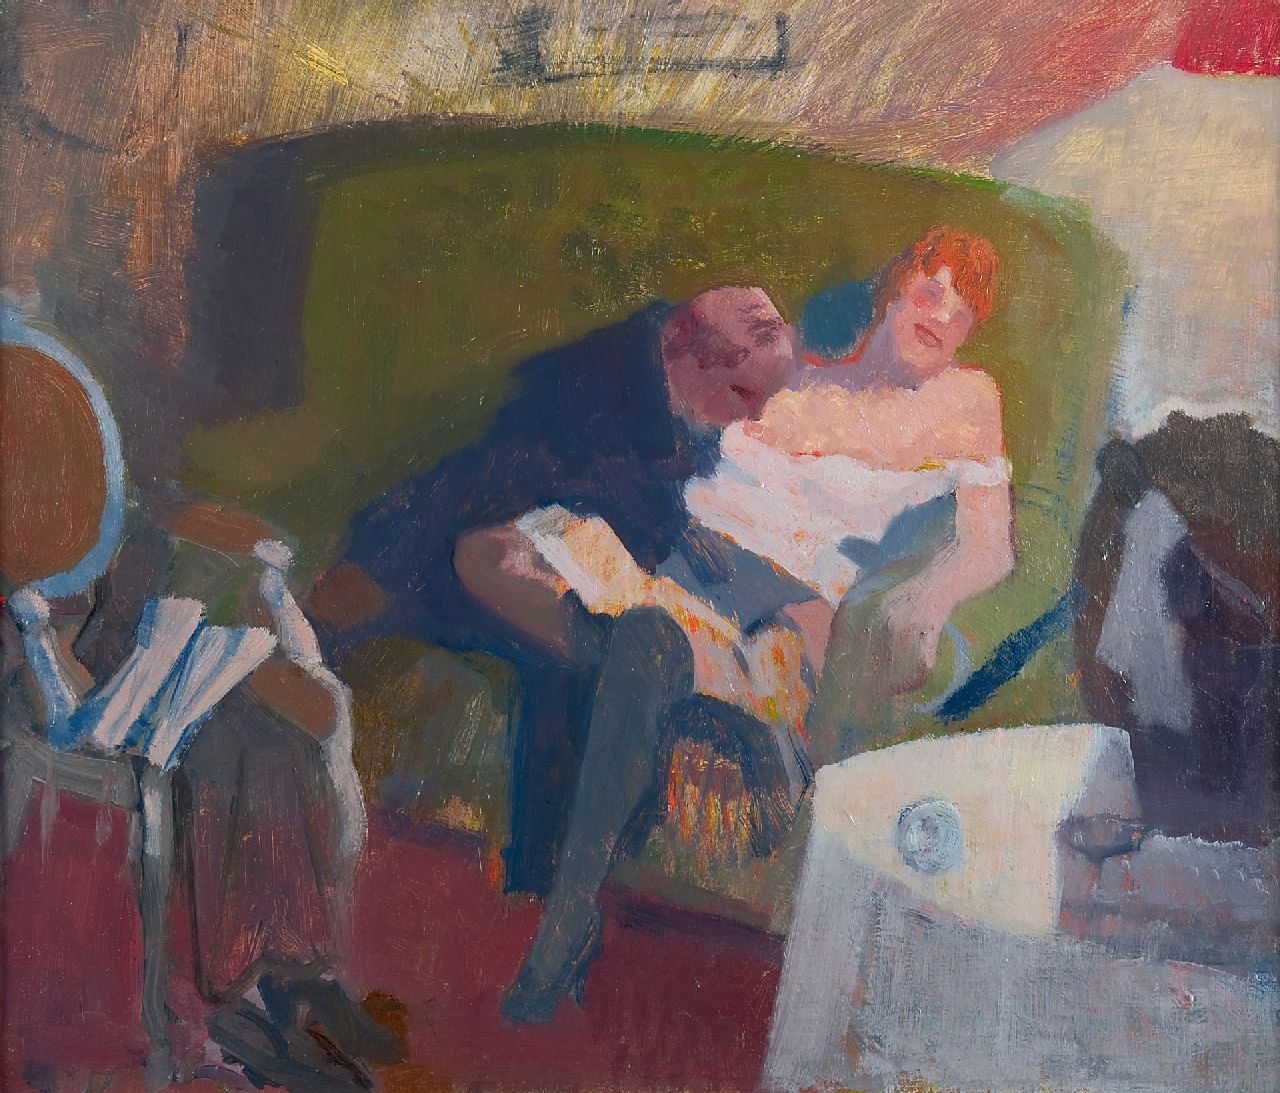 Galema A.  | Arjen Galema | Paintings offered for sale | A couple on a sofa, oil on canvas 53.5 x 63.3 cm